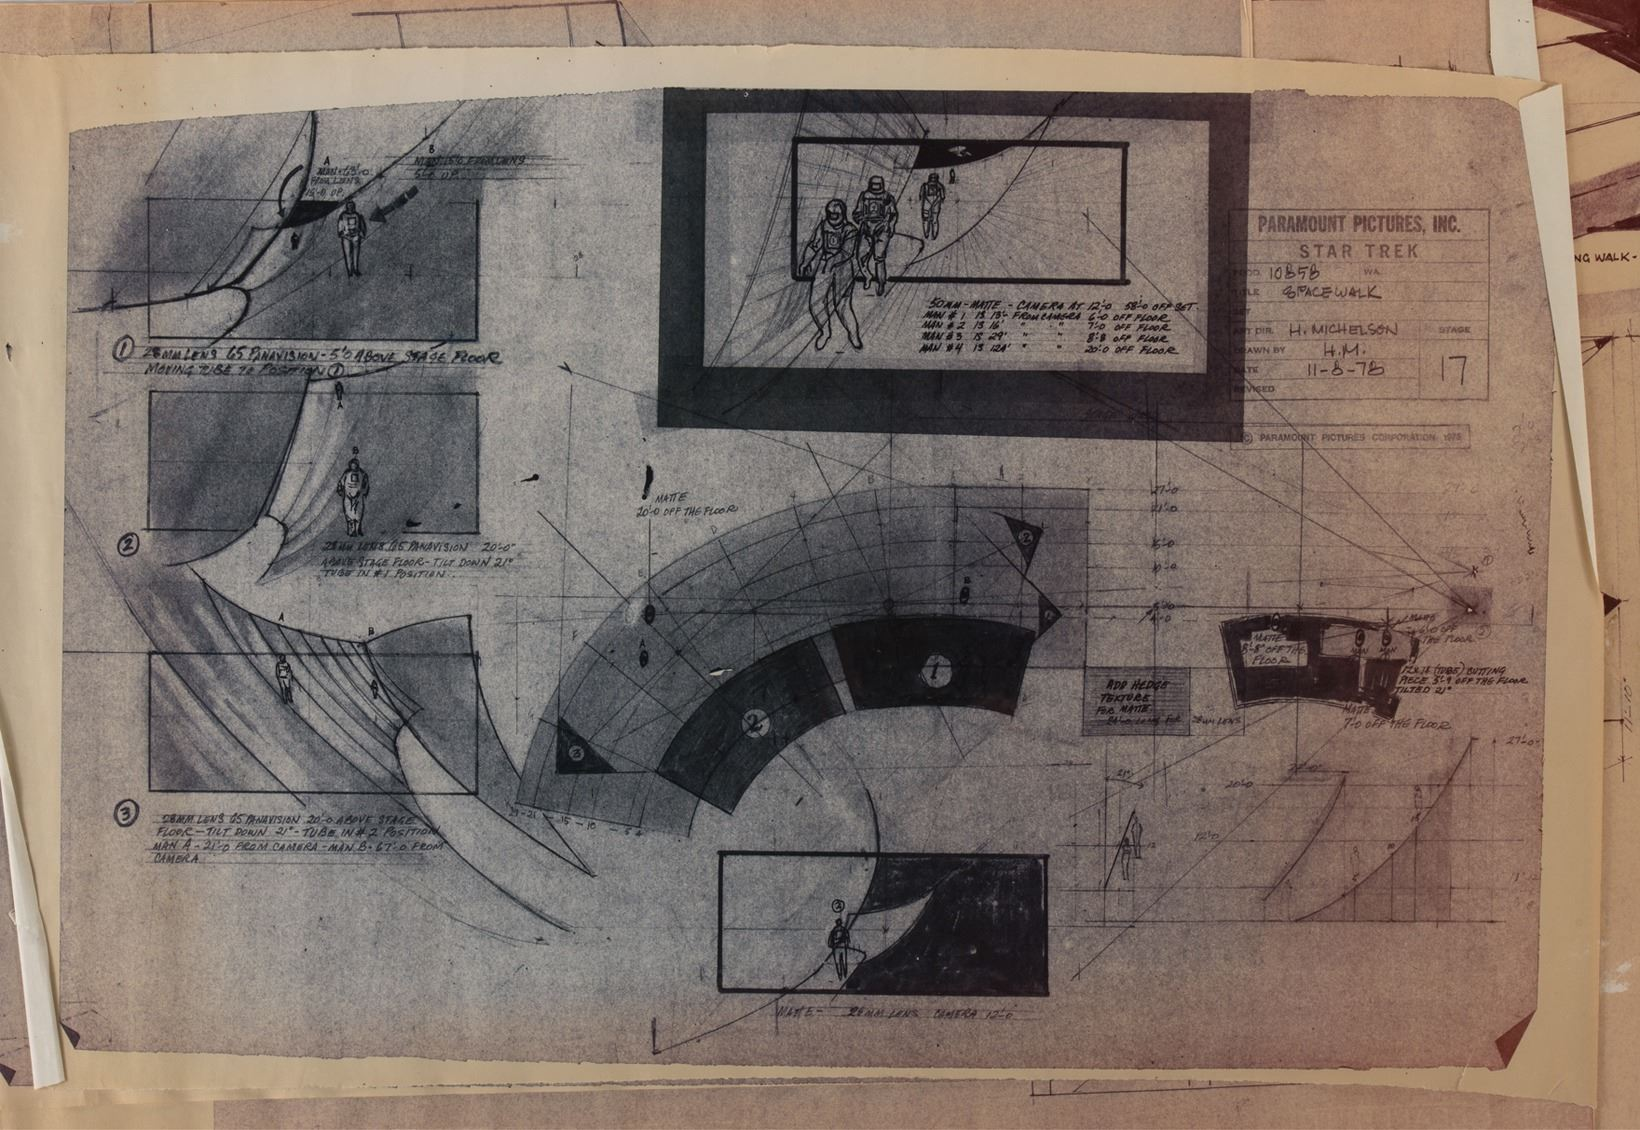 Star Trek: The Motion Picture (10+) production schematics. on